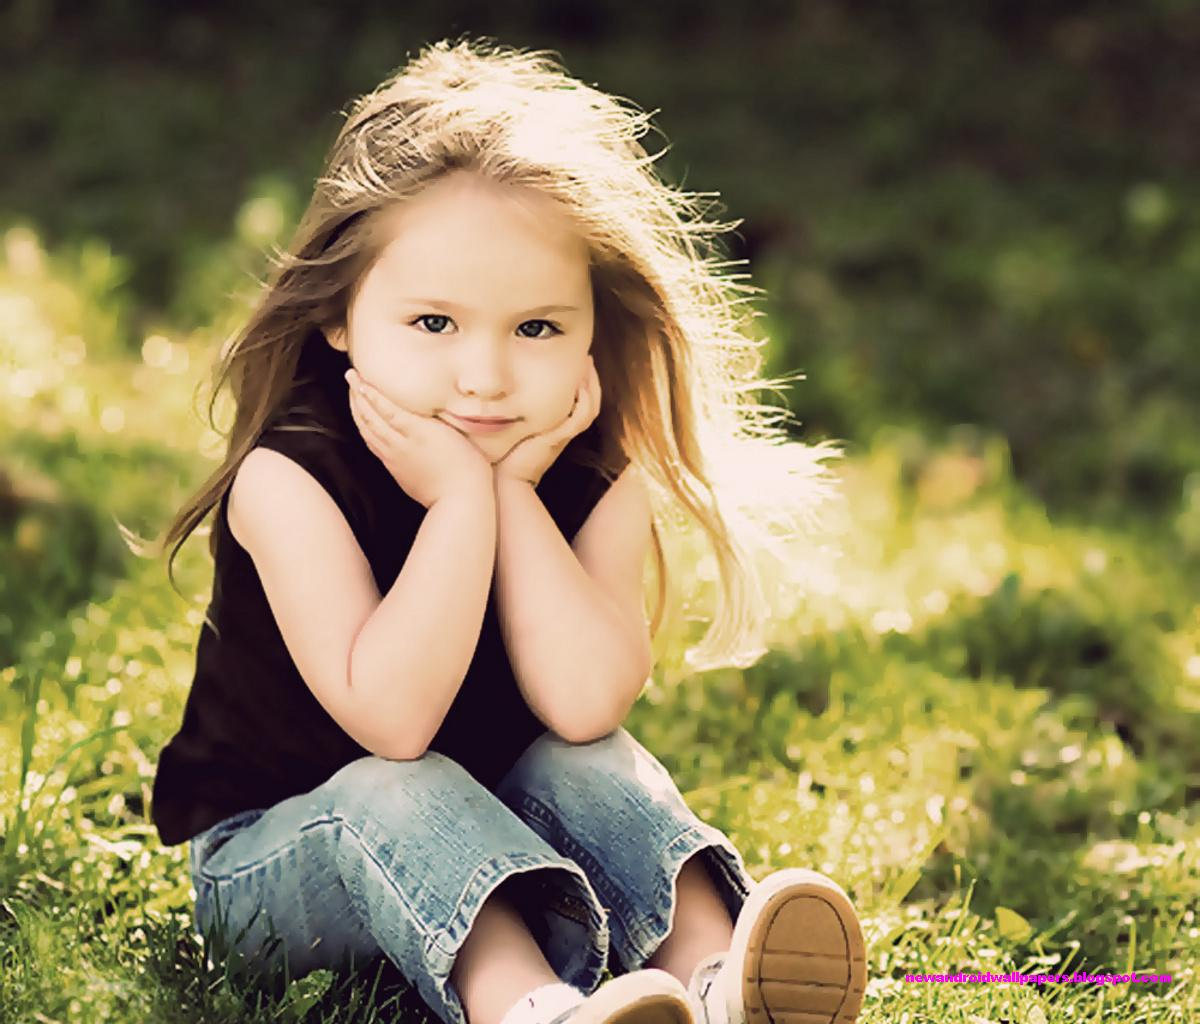 cute and nice baby wallpapers in high quality free download for